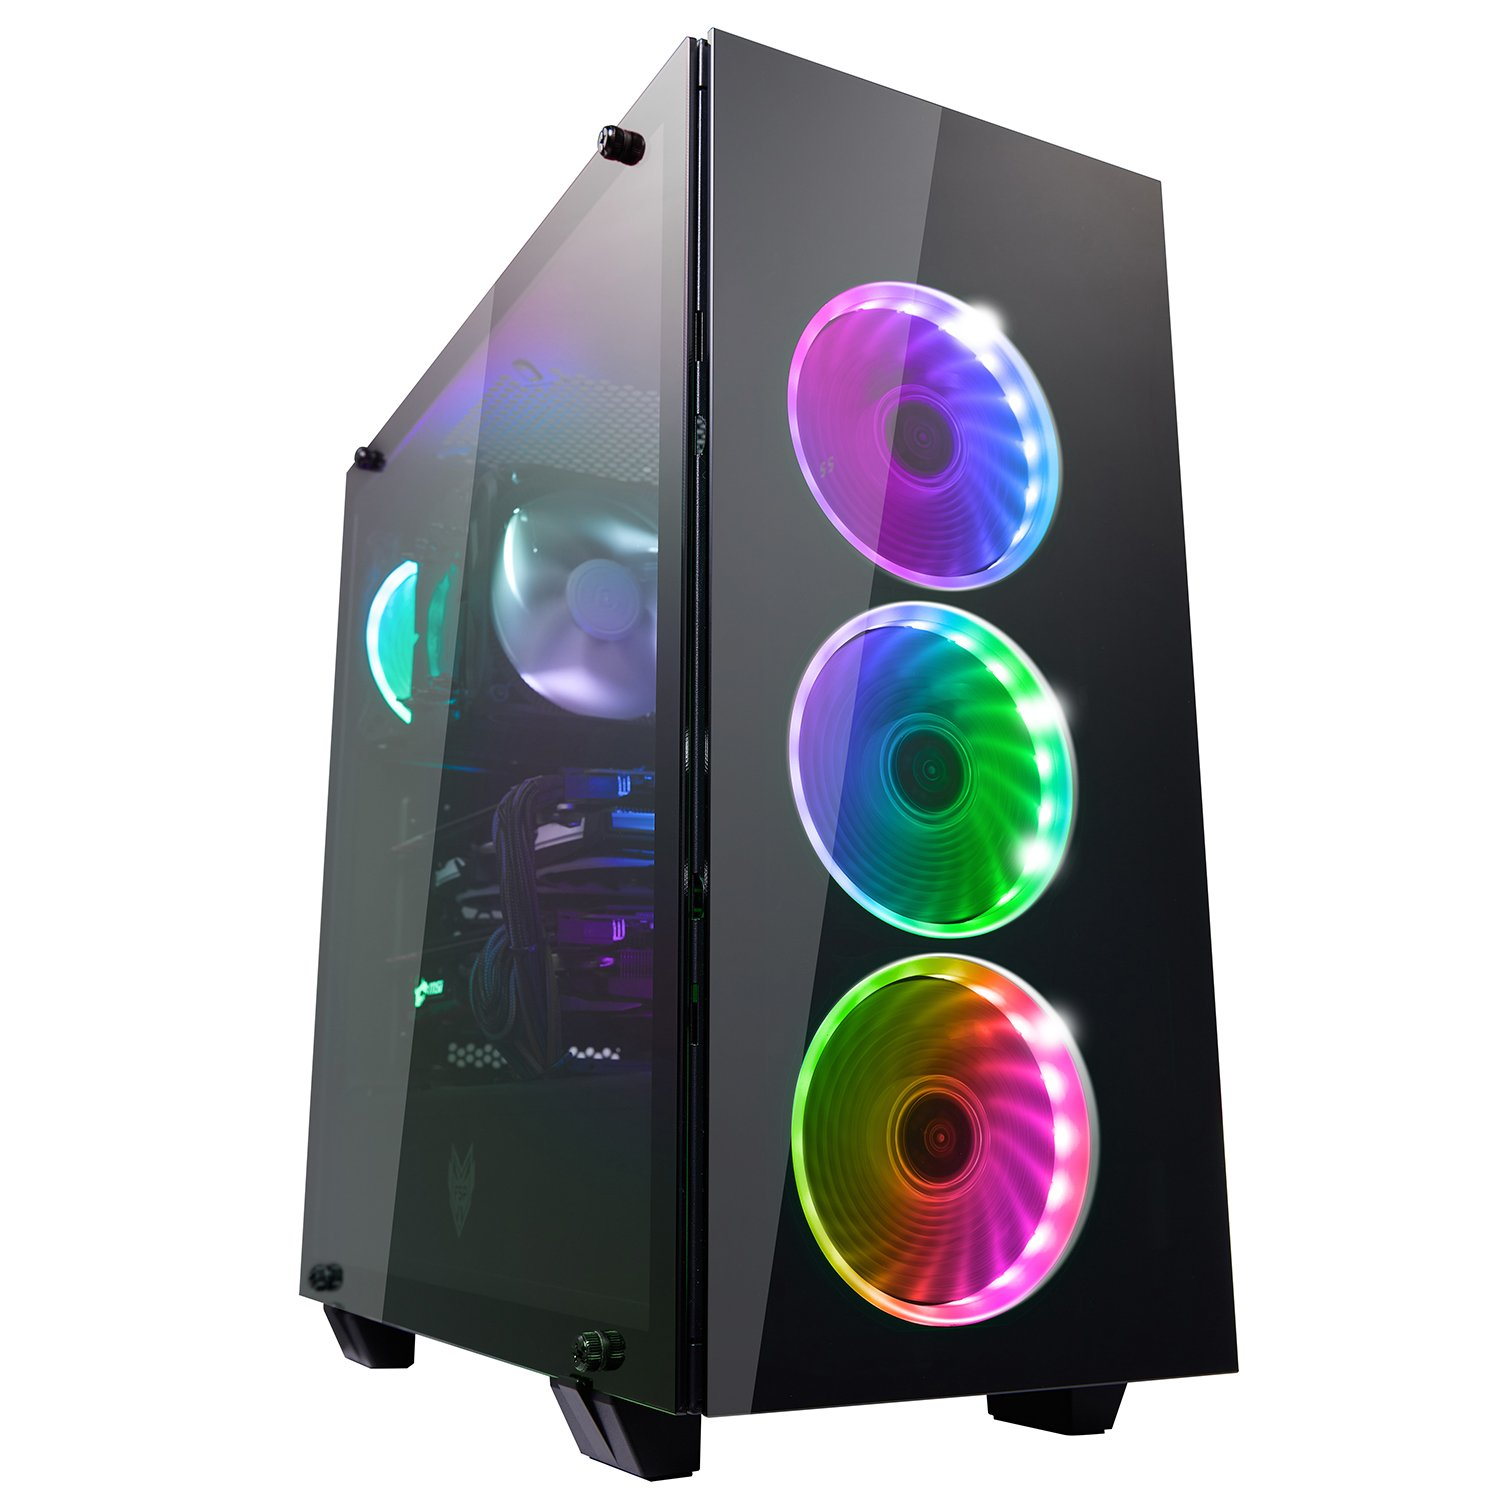 FSP ATX Mid Tower PC Computer